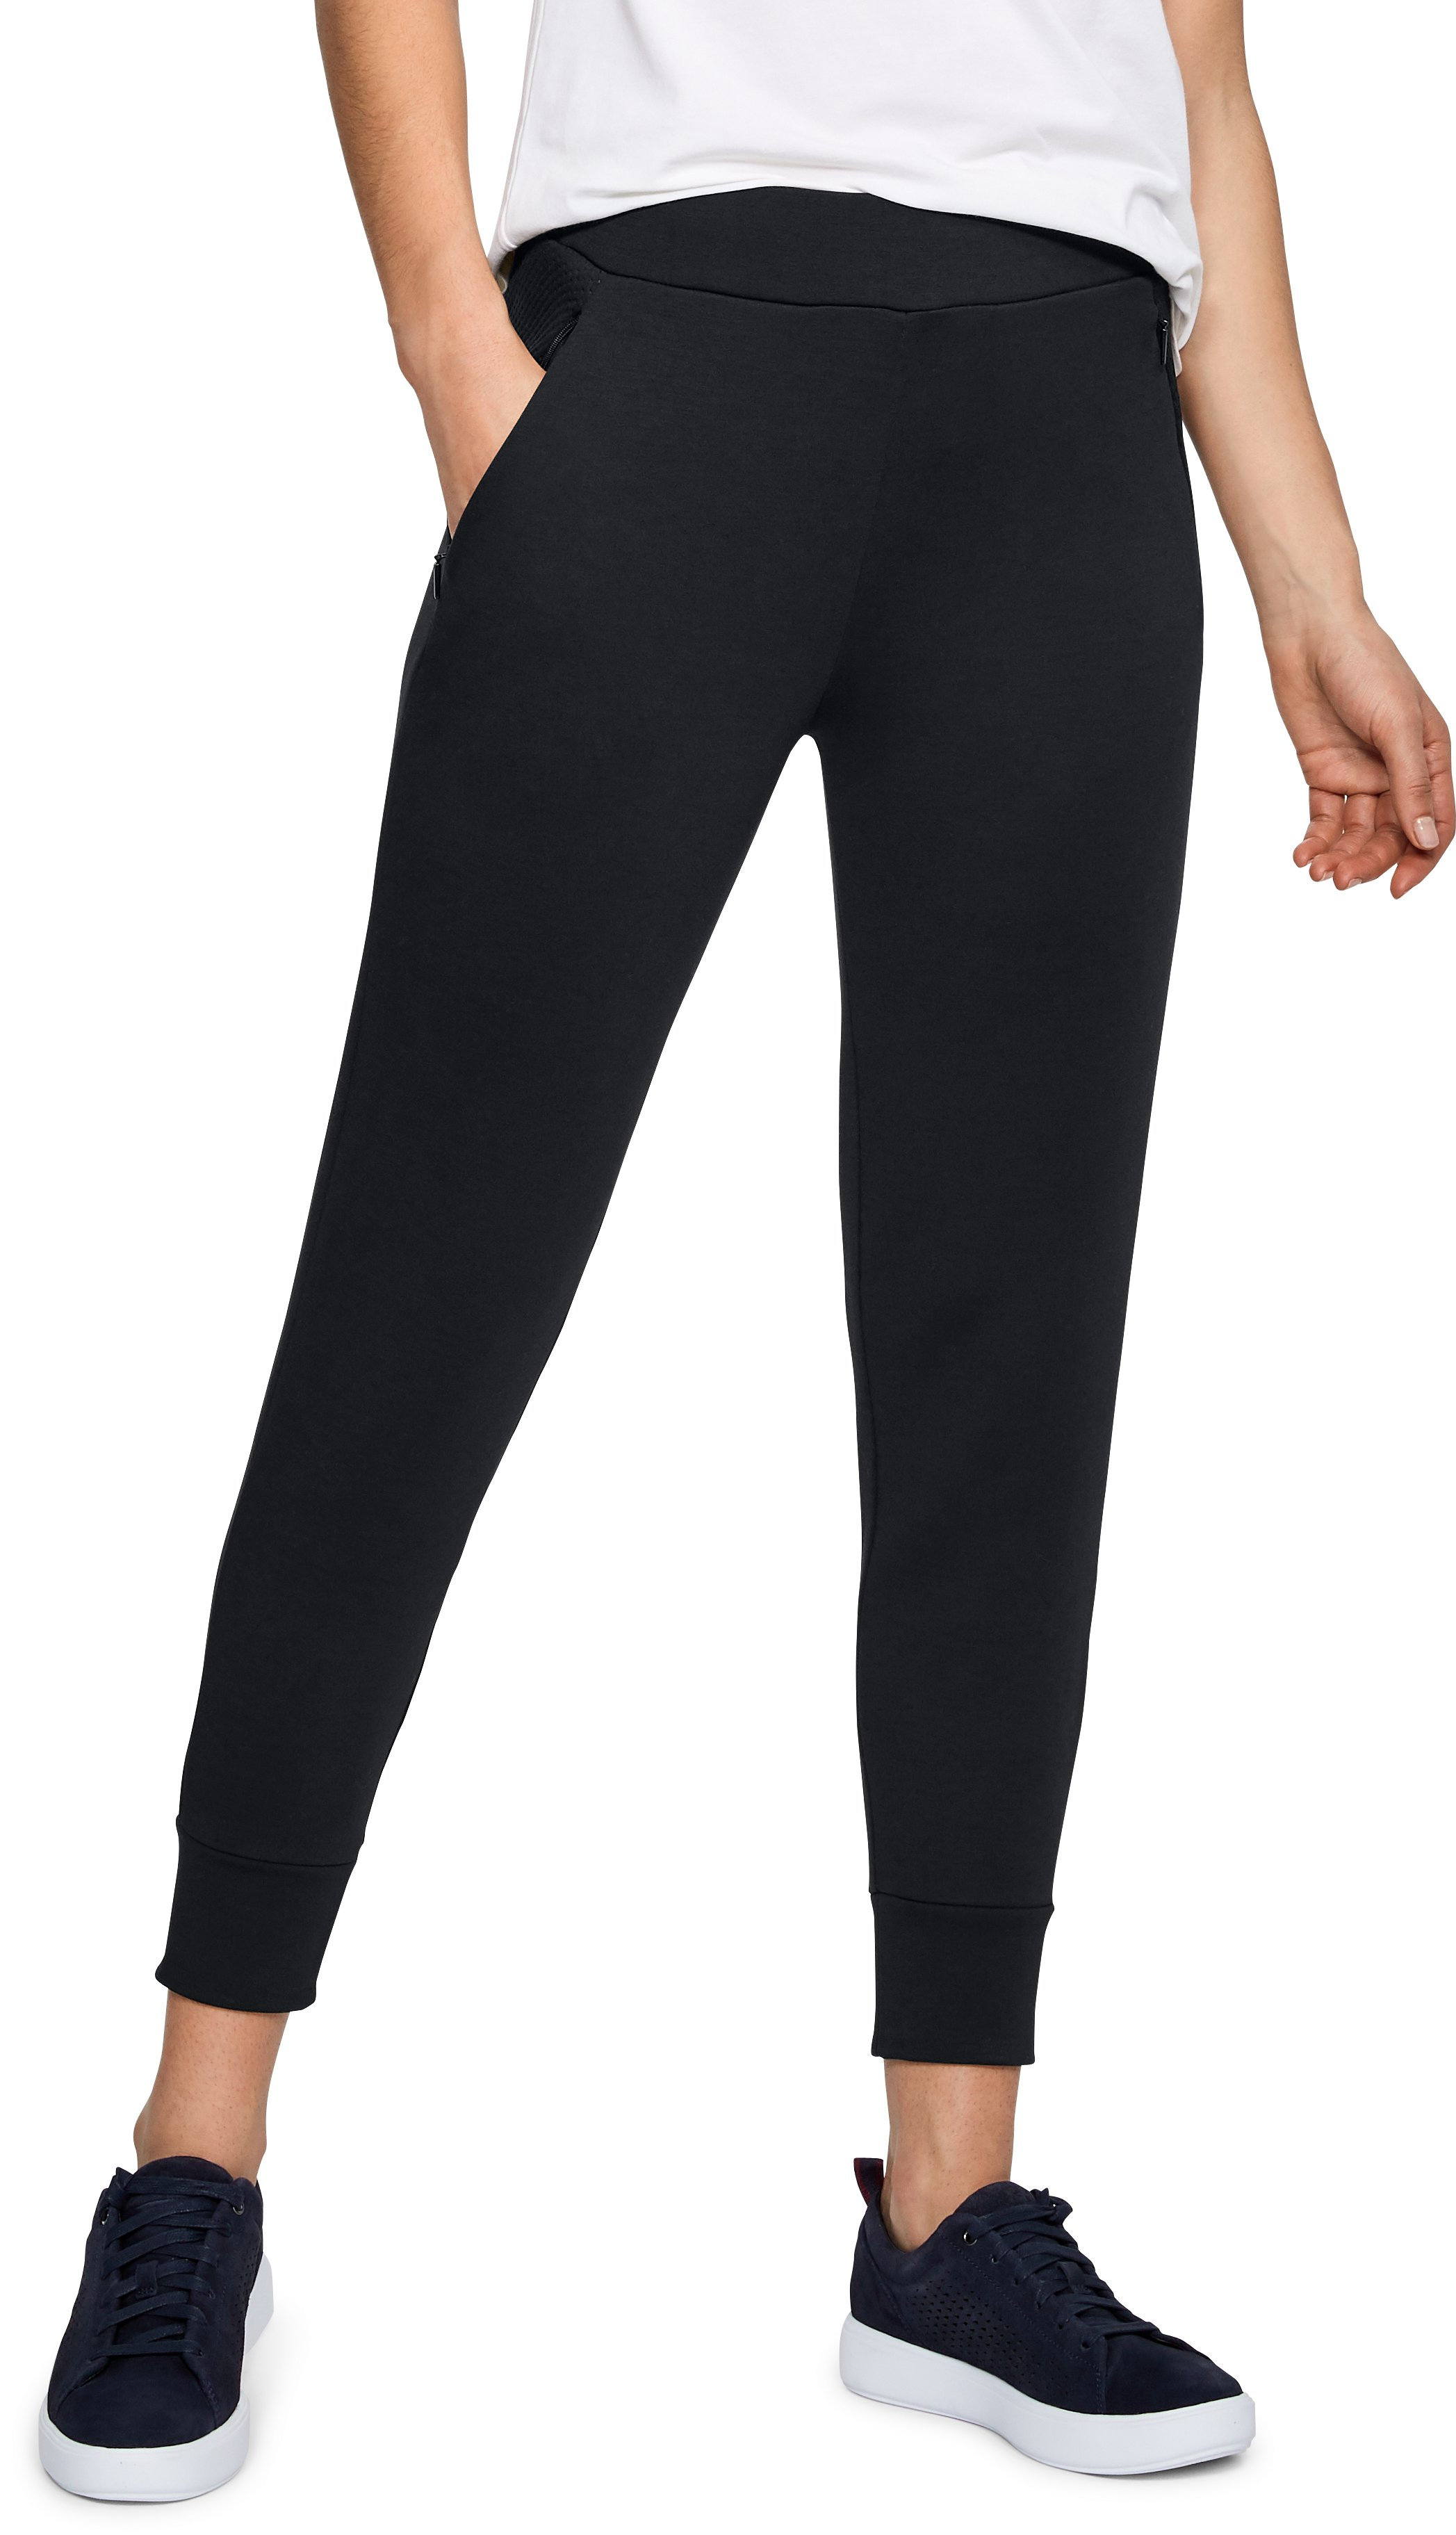 Women's UAS Sweatpants 2 Colors $82.50 - $82.99